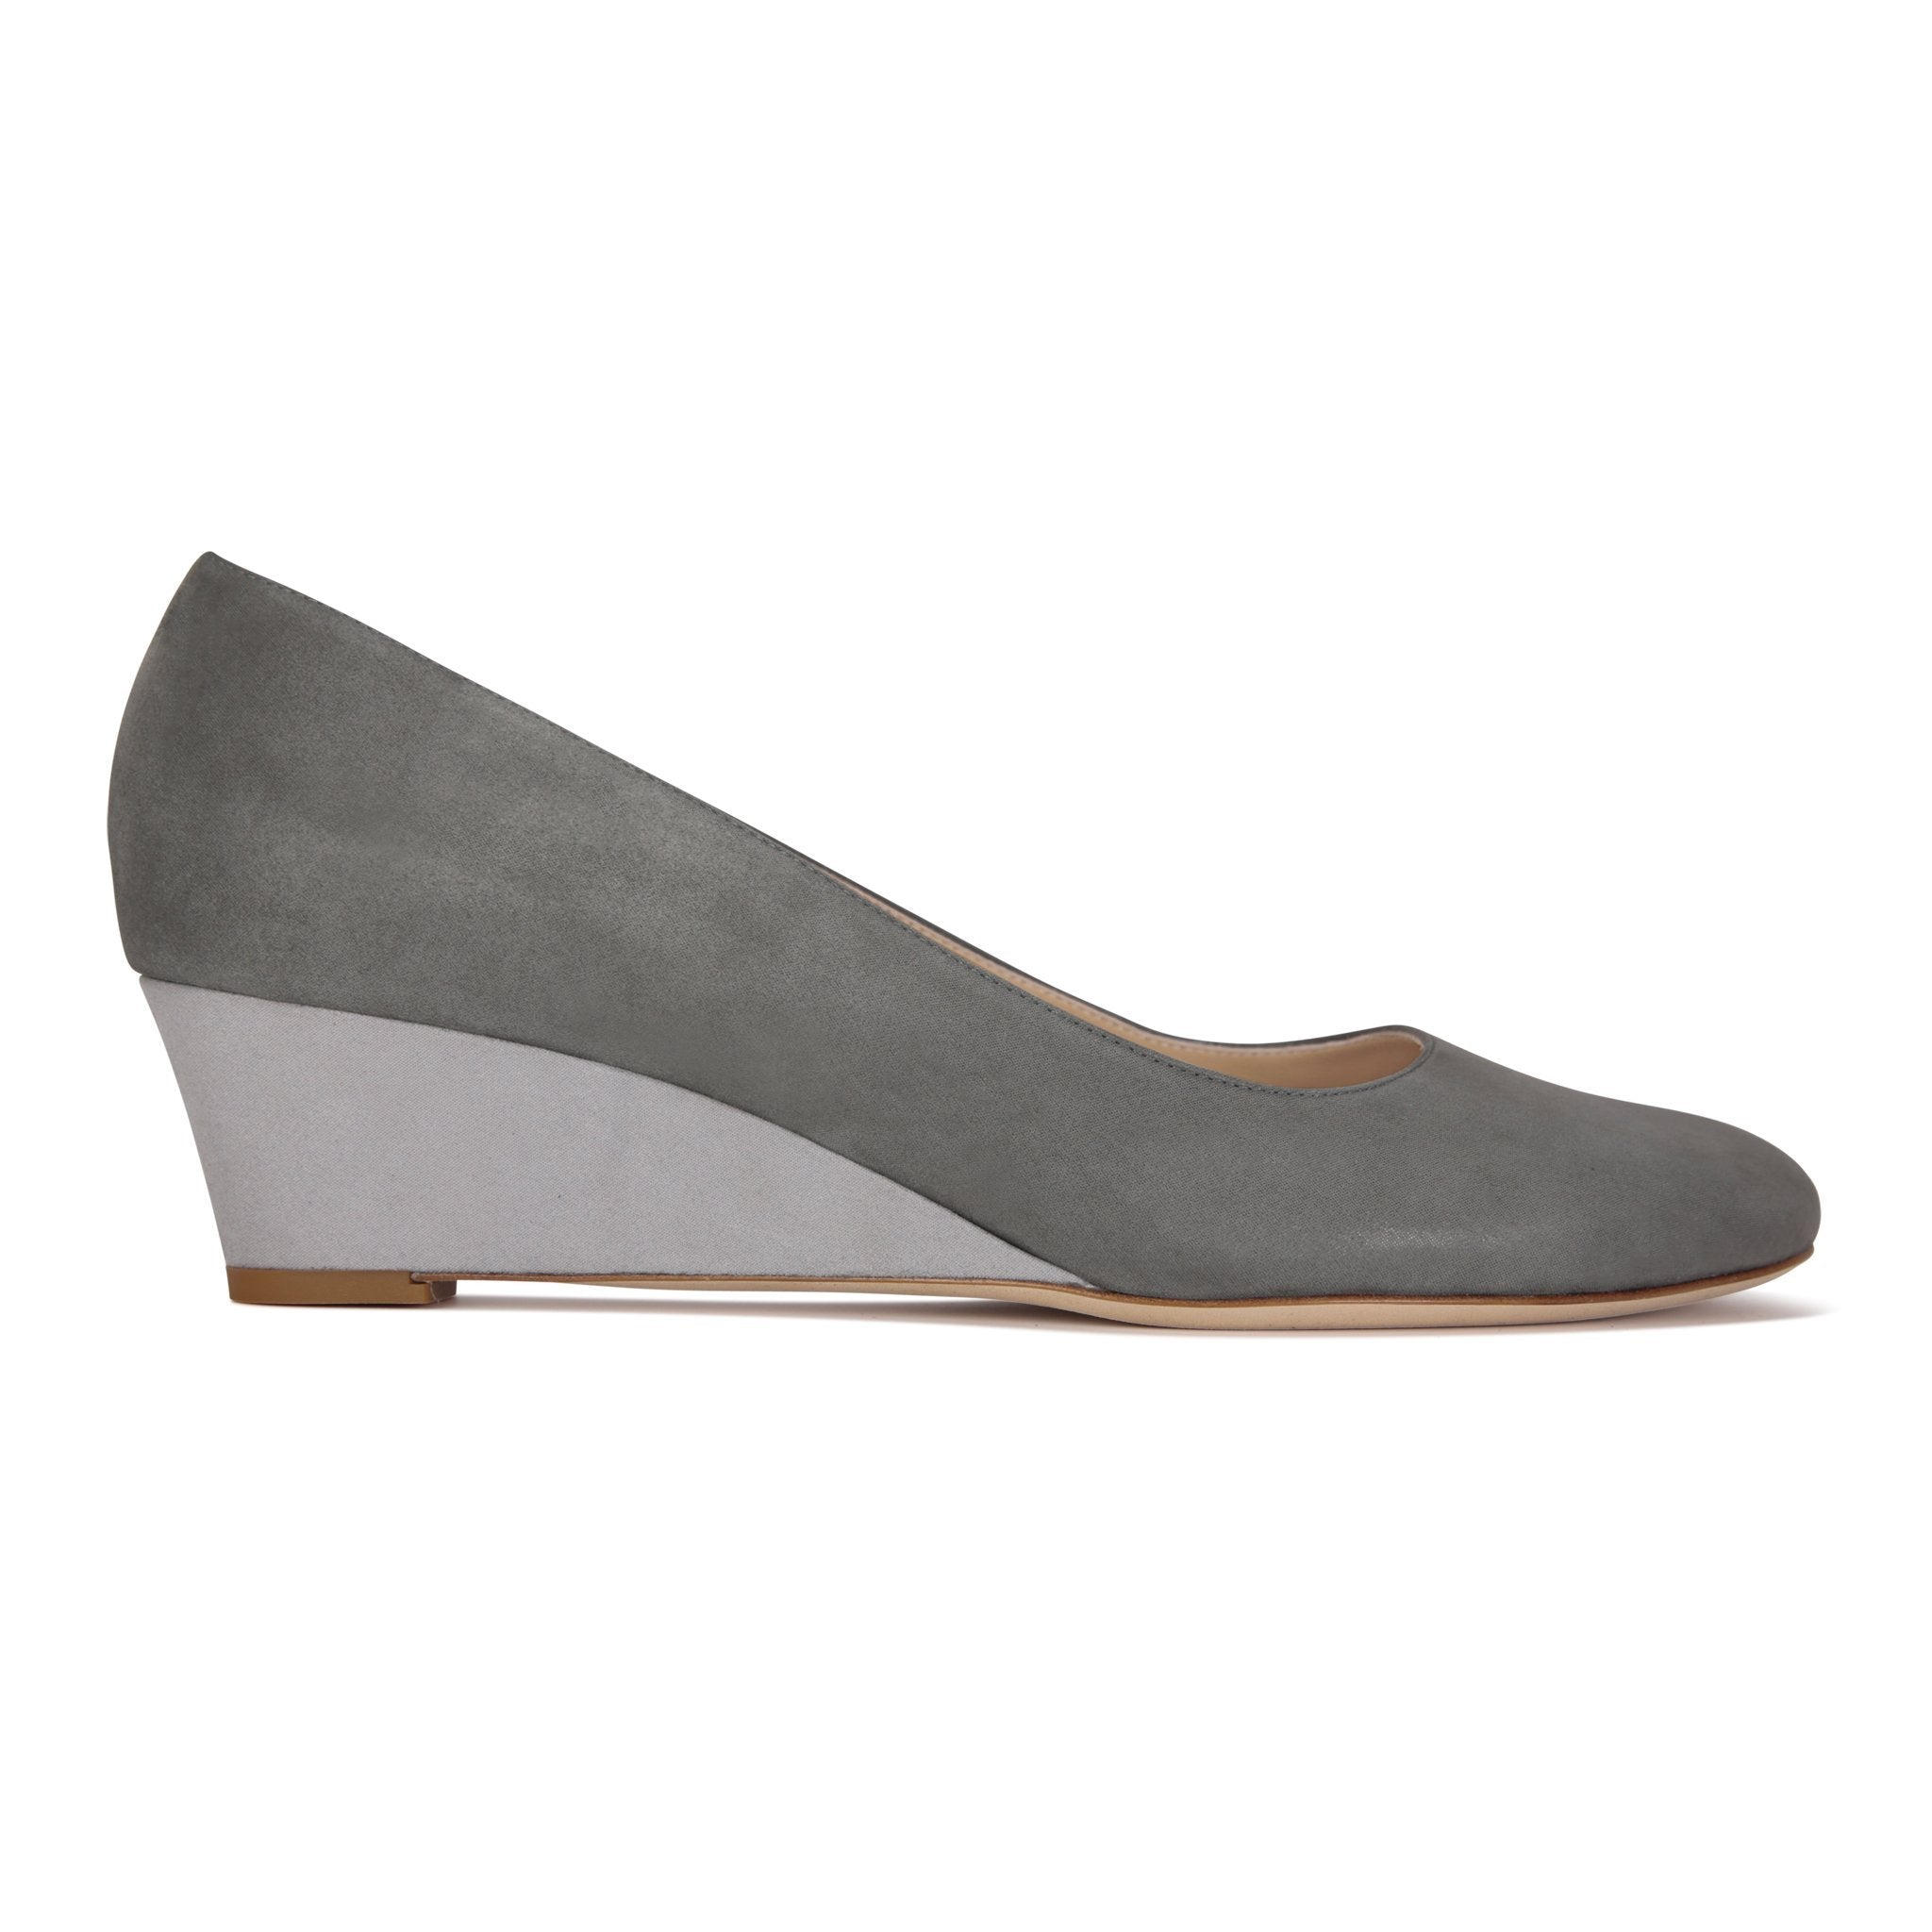 BERGAMO - Hydra Anthracite + Hydra Grigio, VIAJIYU - Women's Hand Made Sustainable Luxury Shoes. Made in Italy. Made to Order.